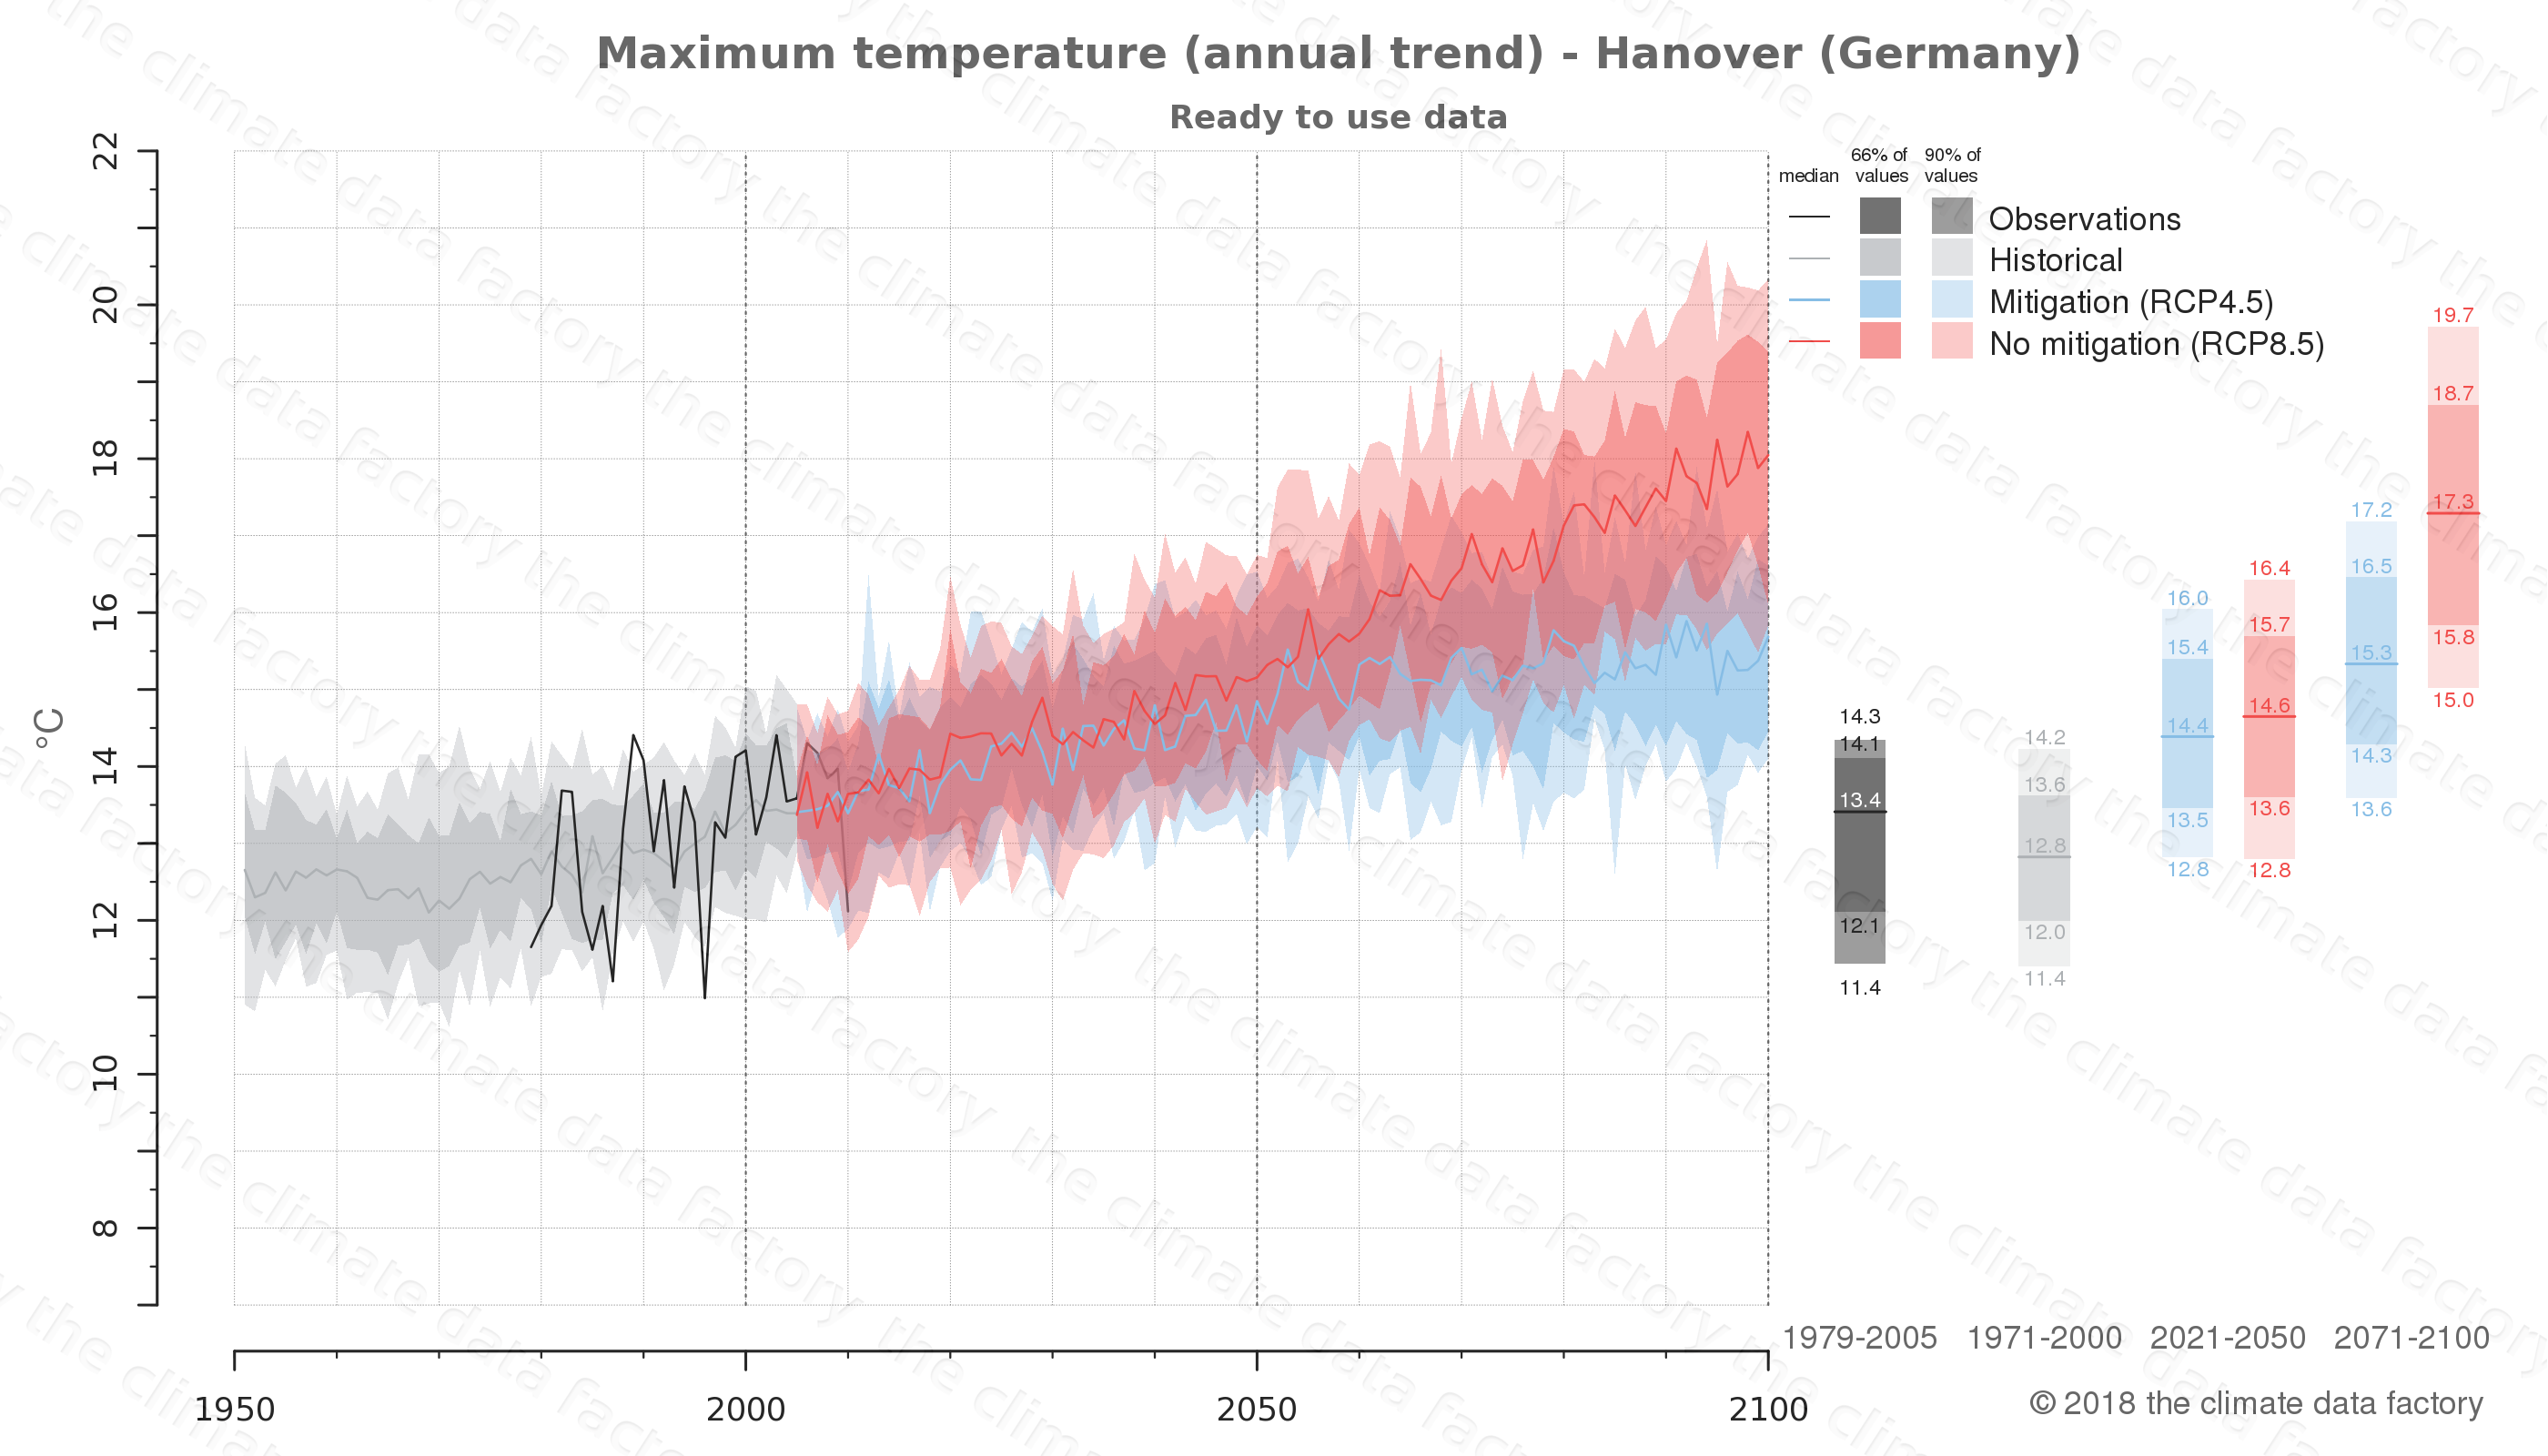 climate change data policy adaptation climate graph city data maximum-temperature hanover germany